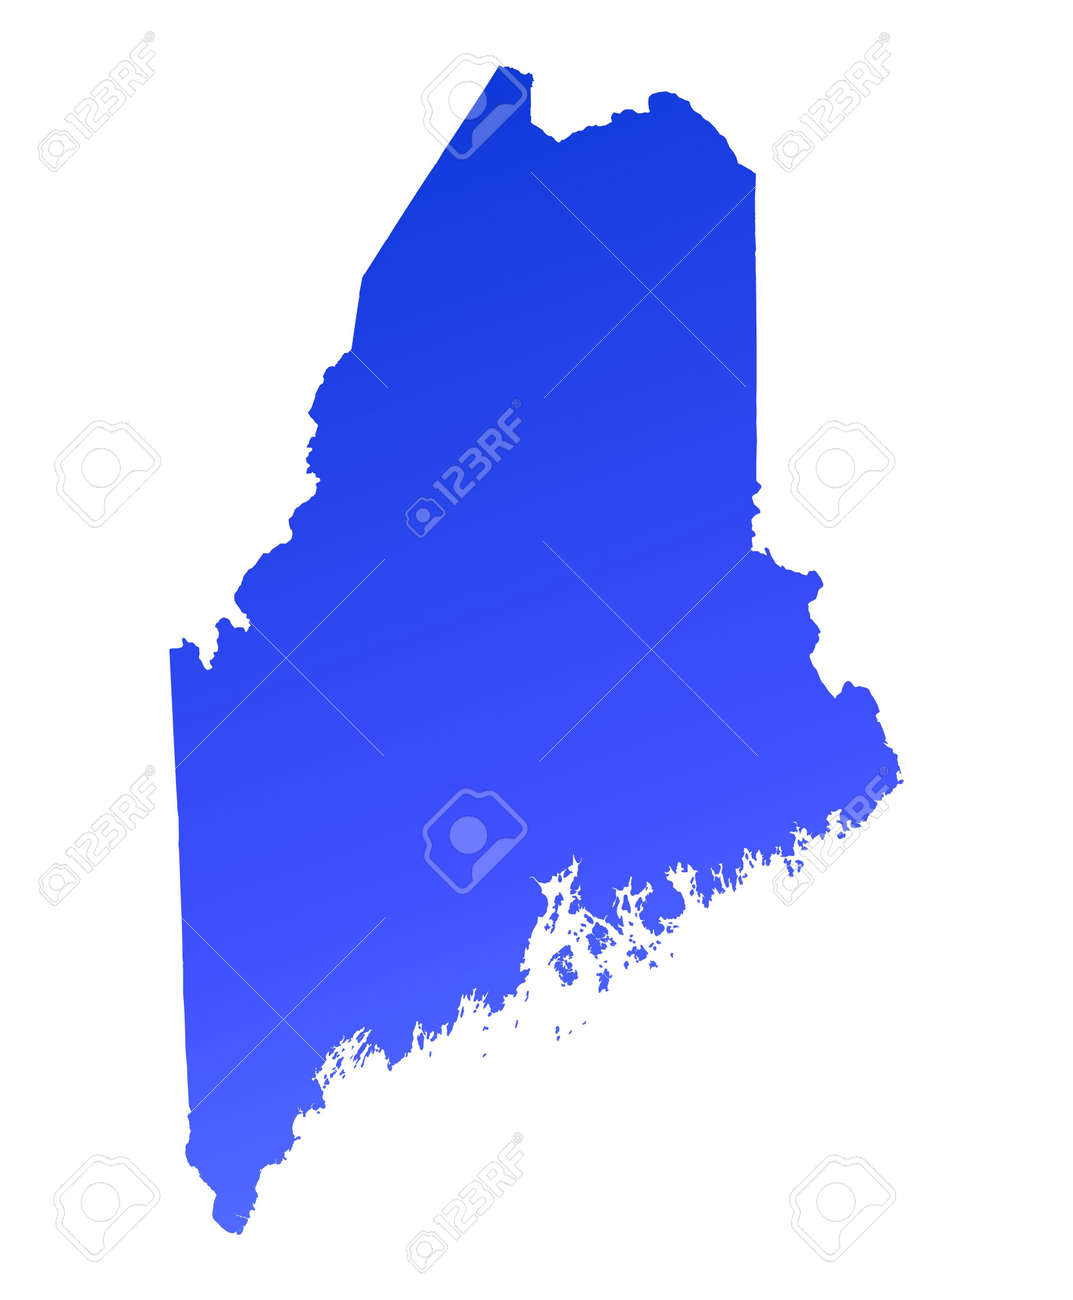 Blue Gradient Maine Map USA Detailed Mercator Projection Stock - Maine on map of usa